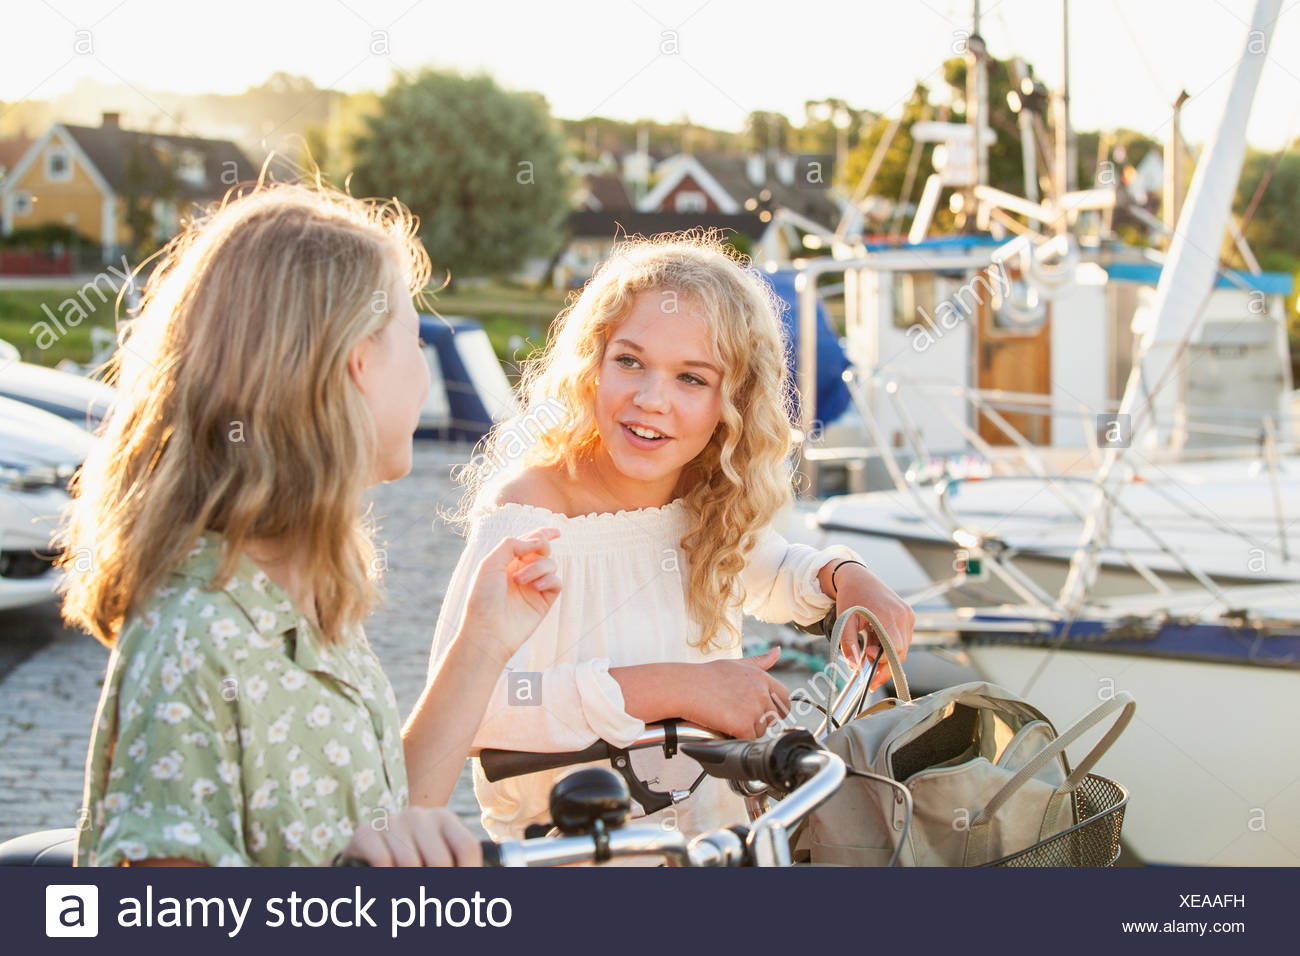 Sweden, Blekinge, Hallevik, Two teenage girls(14-15, 16-17) with bicycles talking at marina bay Stock Photo